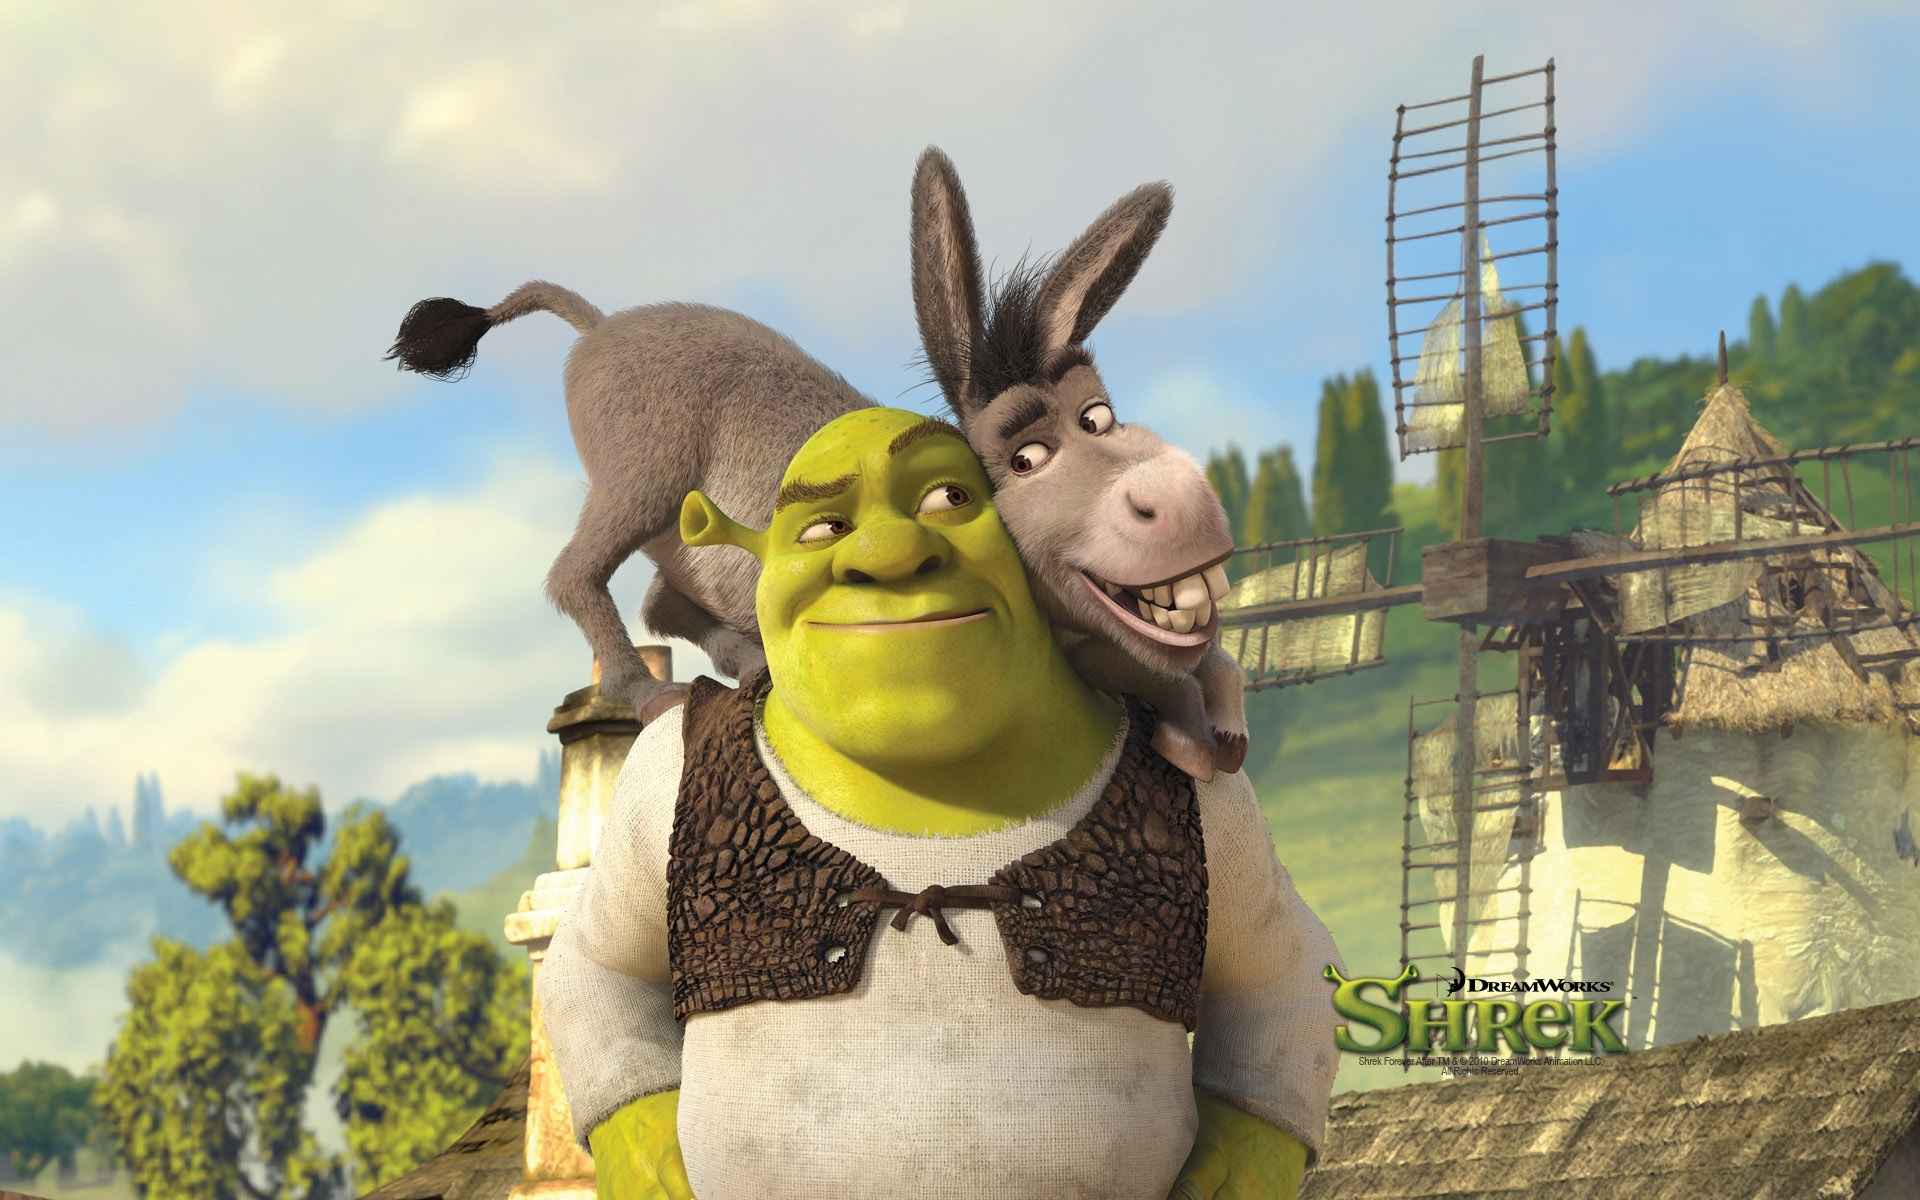 shrek donkey cartoon wallpapers keyword